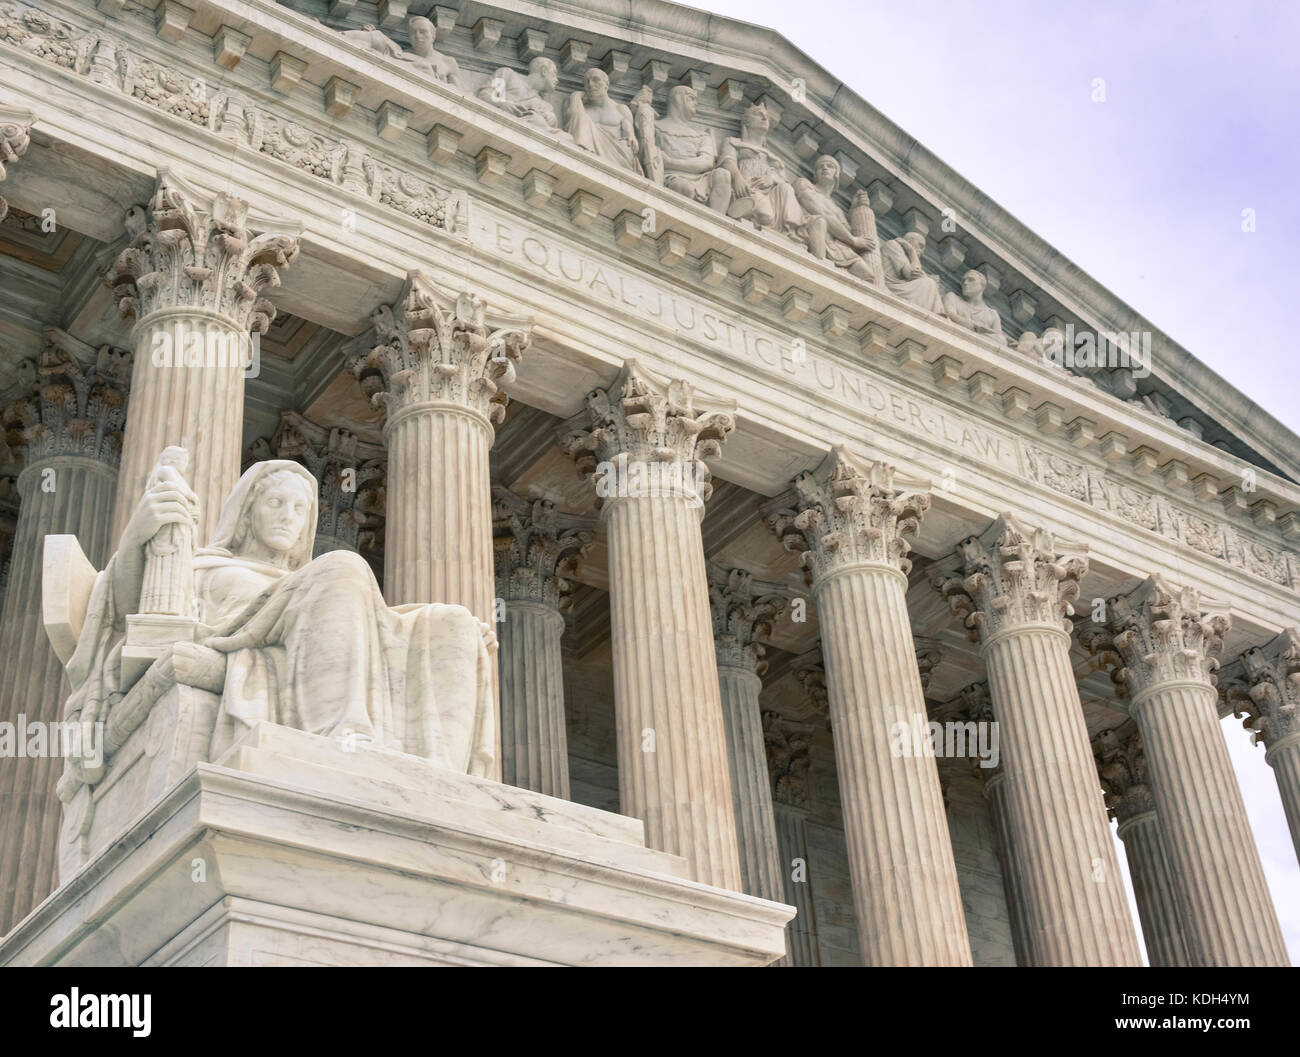 The Statue of Contemplation sits before the entrance to the US Supreme Court in Washington, DC, USA - Stock Image